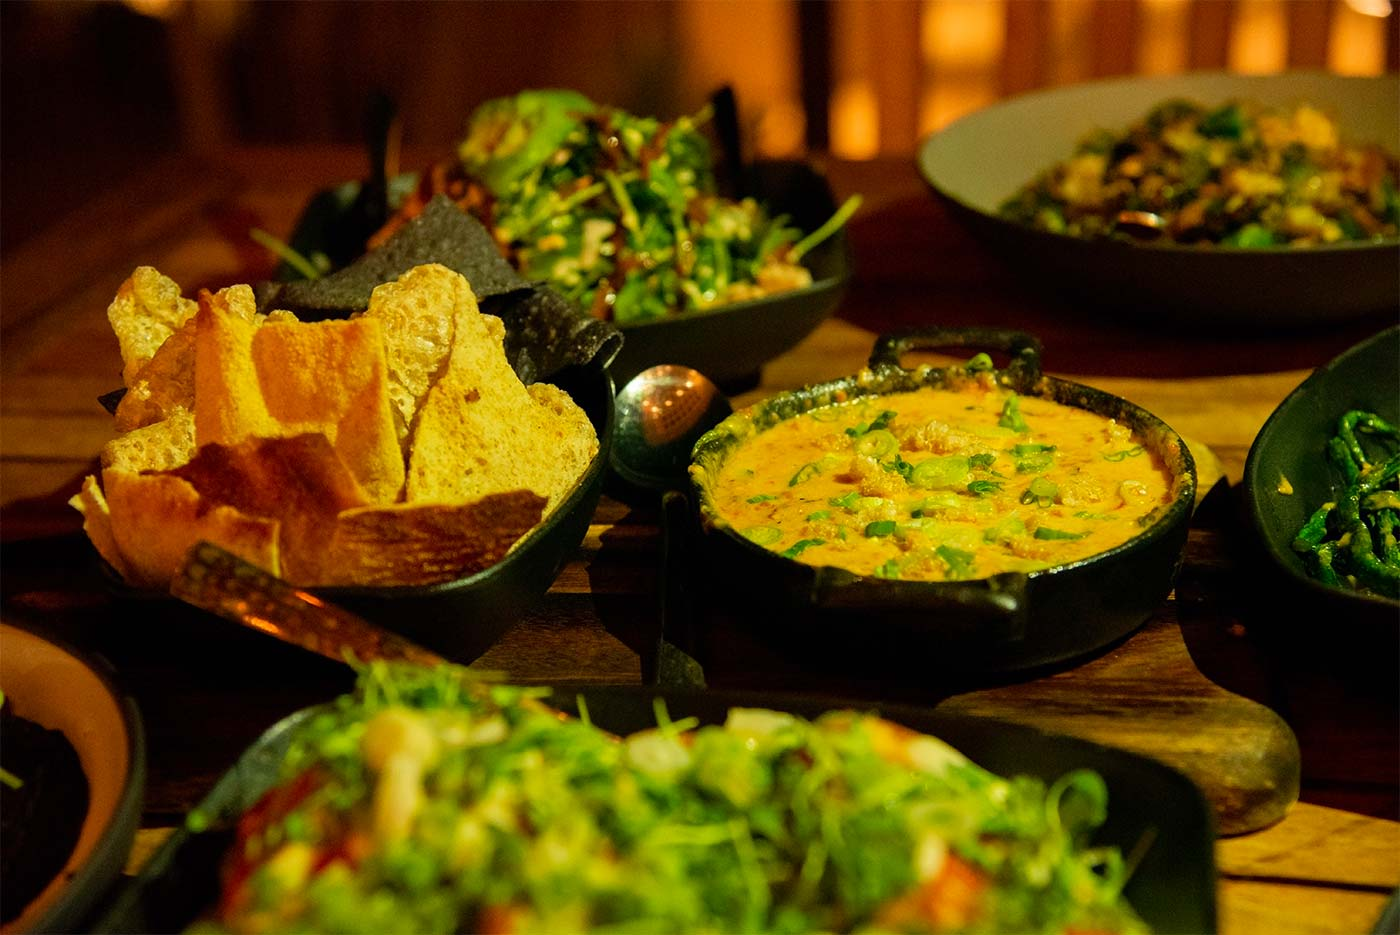 an array of Mexican food dishes on wooden table